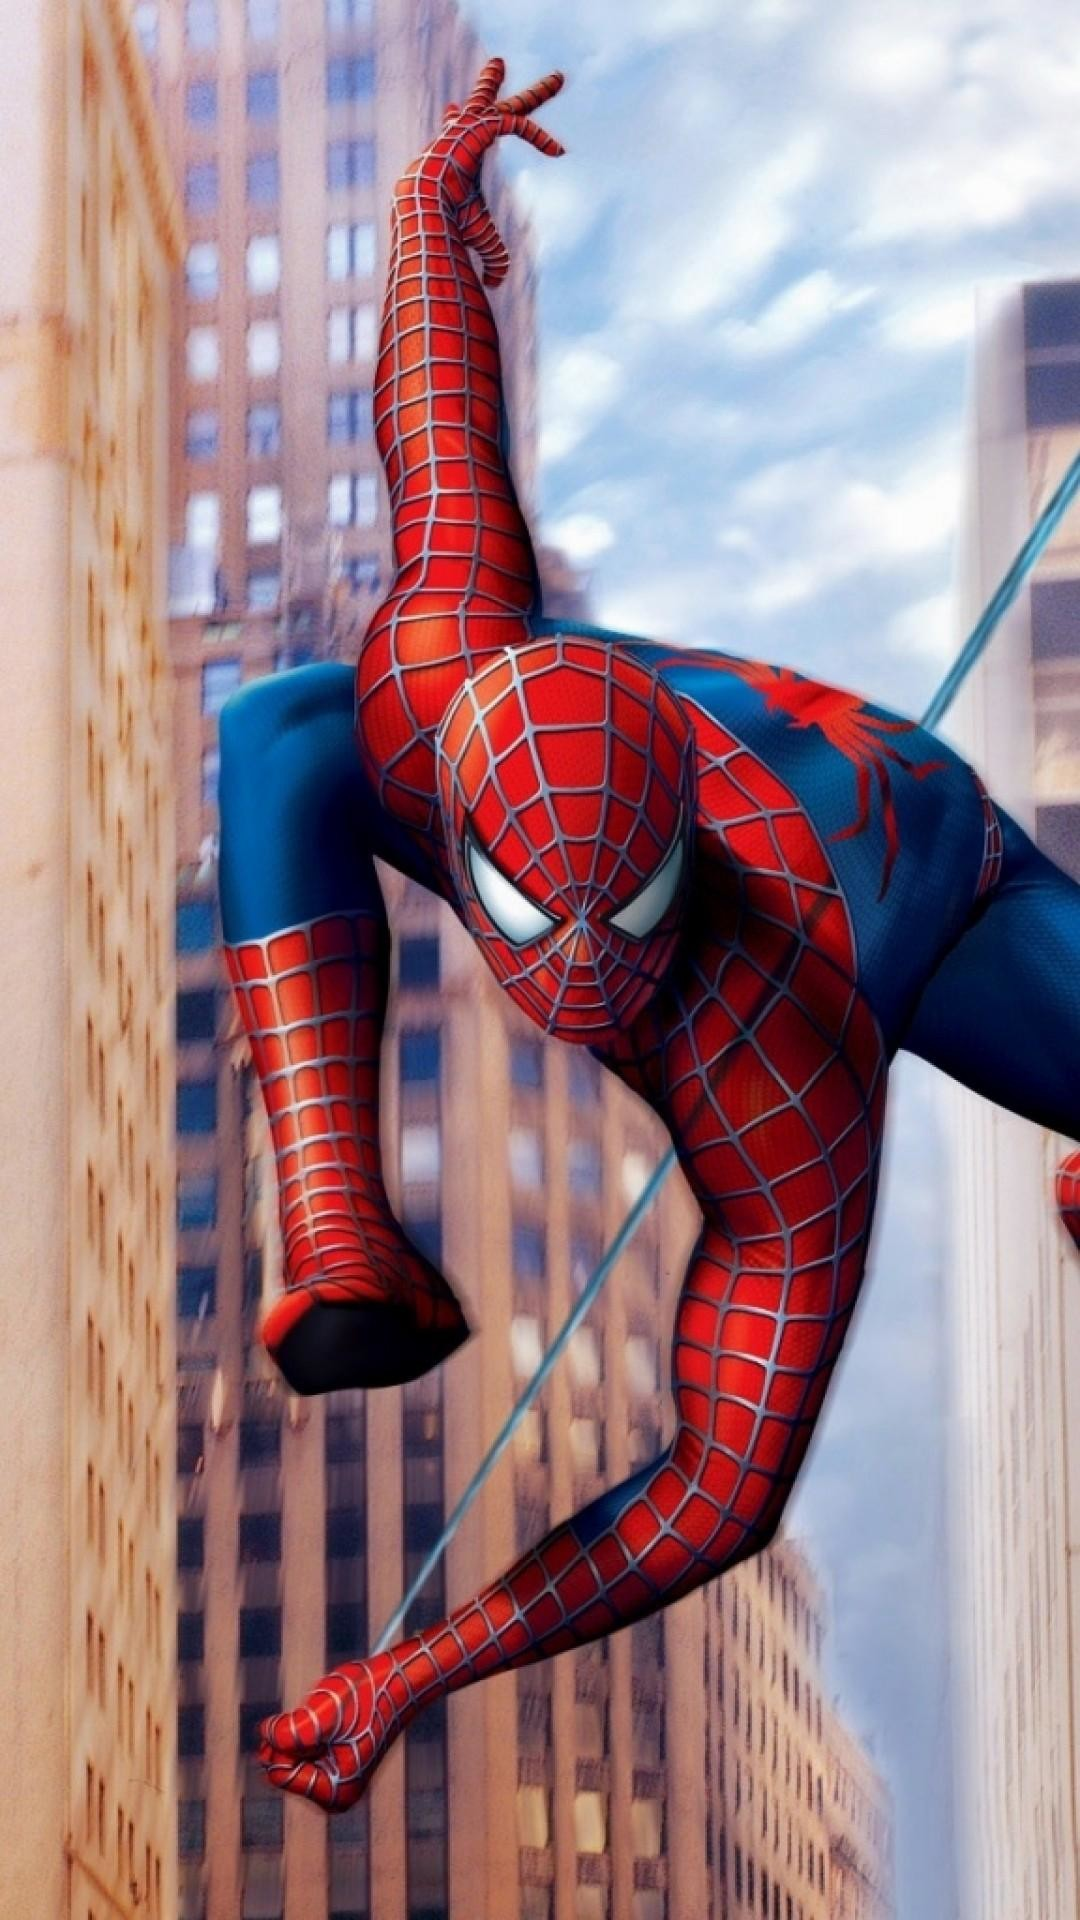 wallpaper.wiki-Spiderman-Marvel-Background-for-Iphone-PIC-